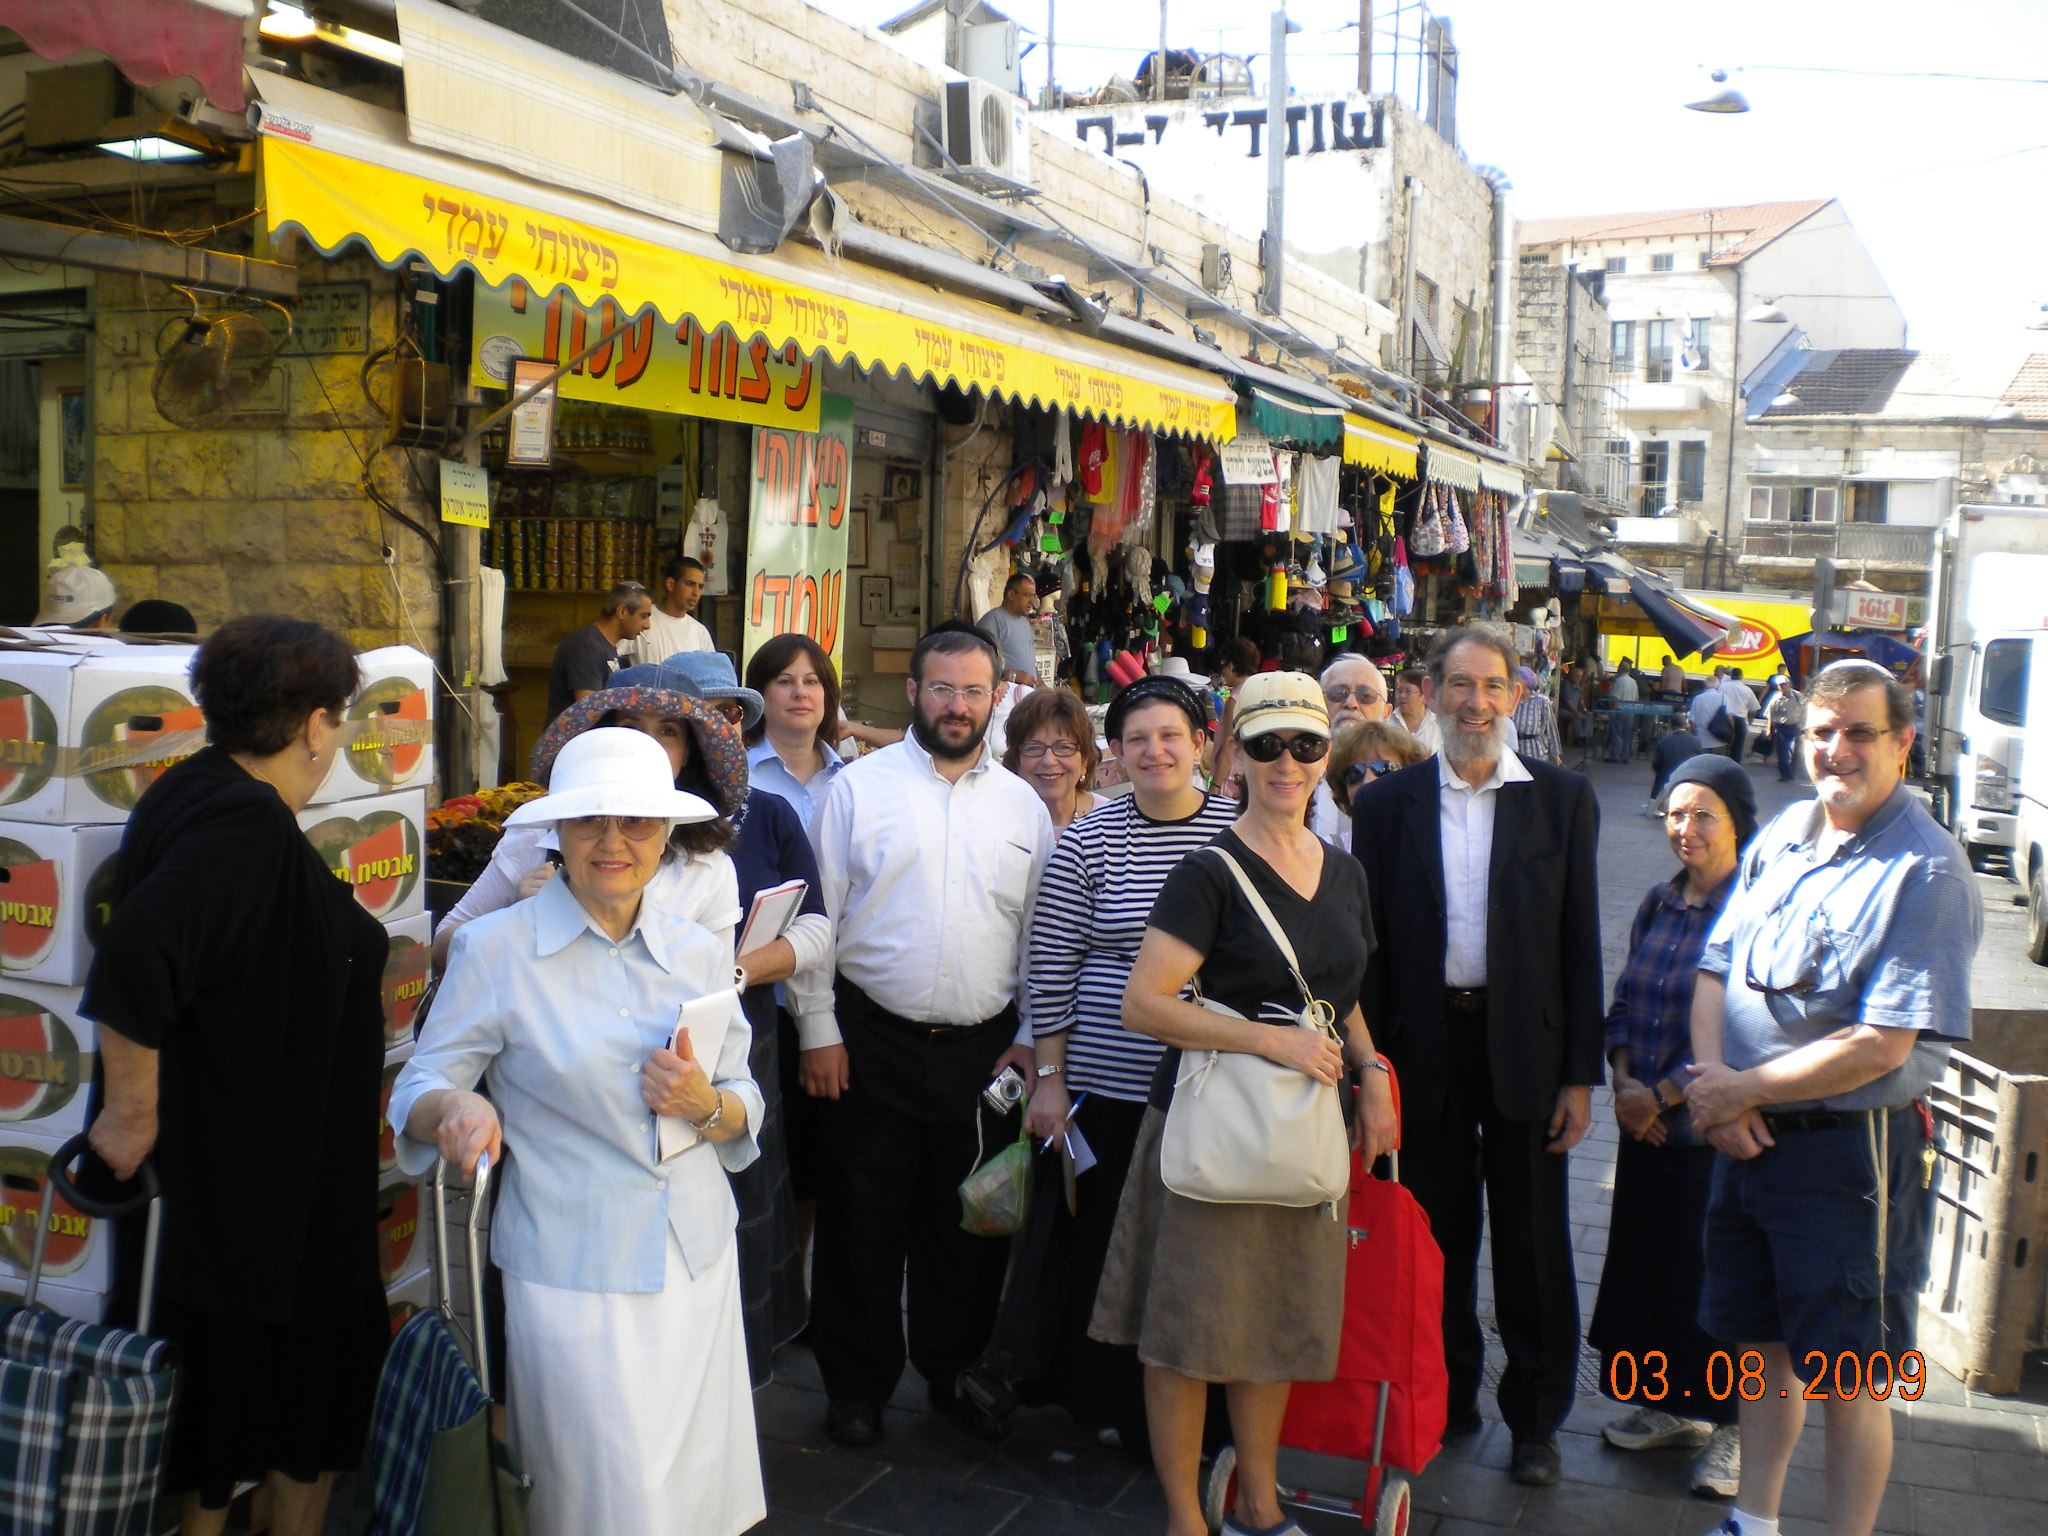 shuk-tour-1-aug-3-20091